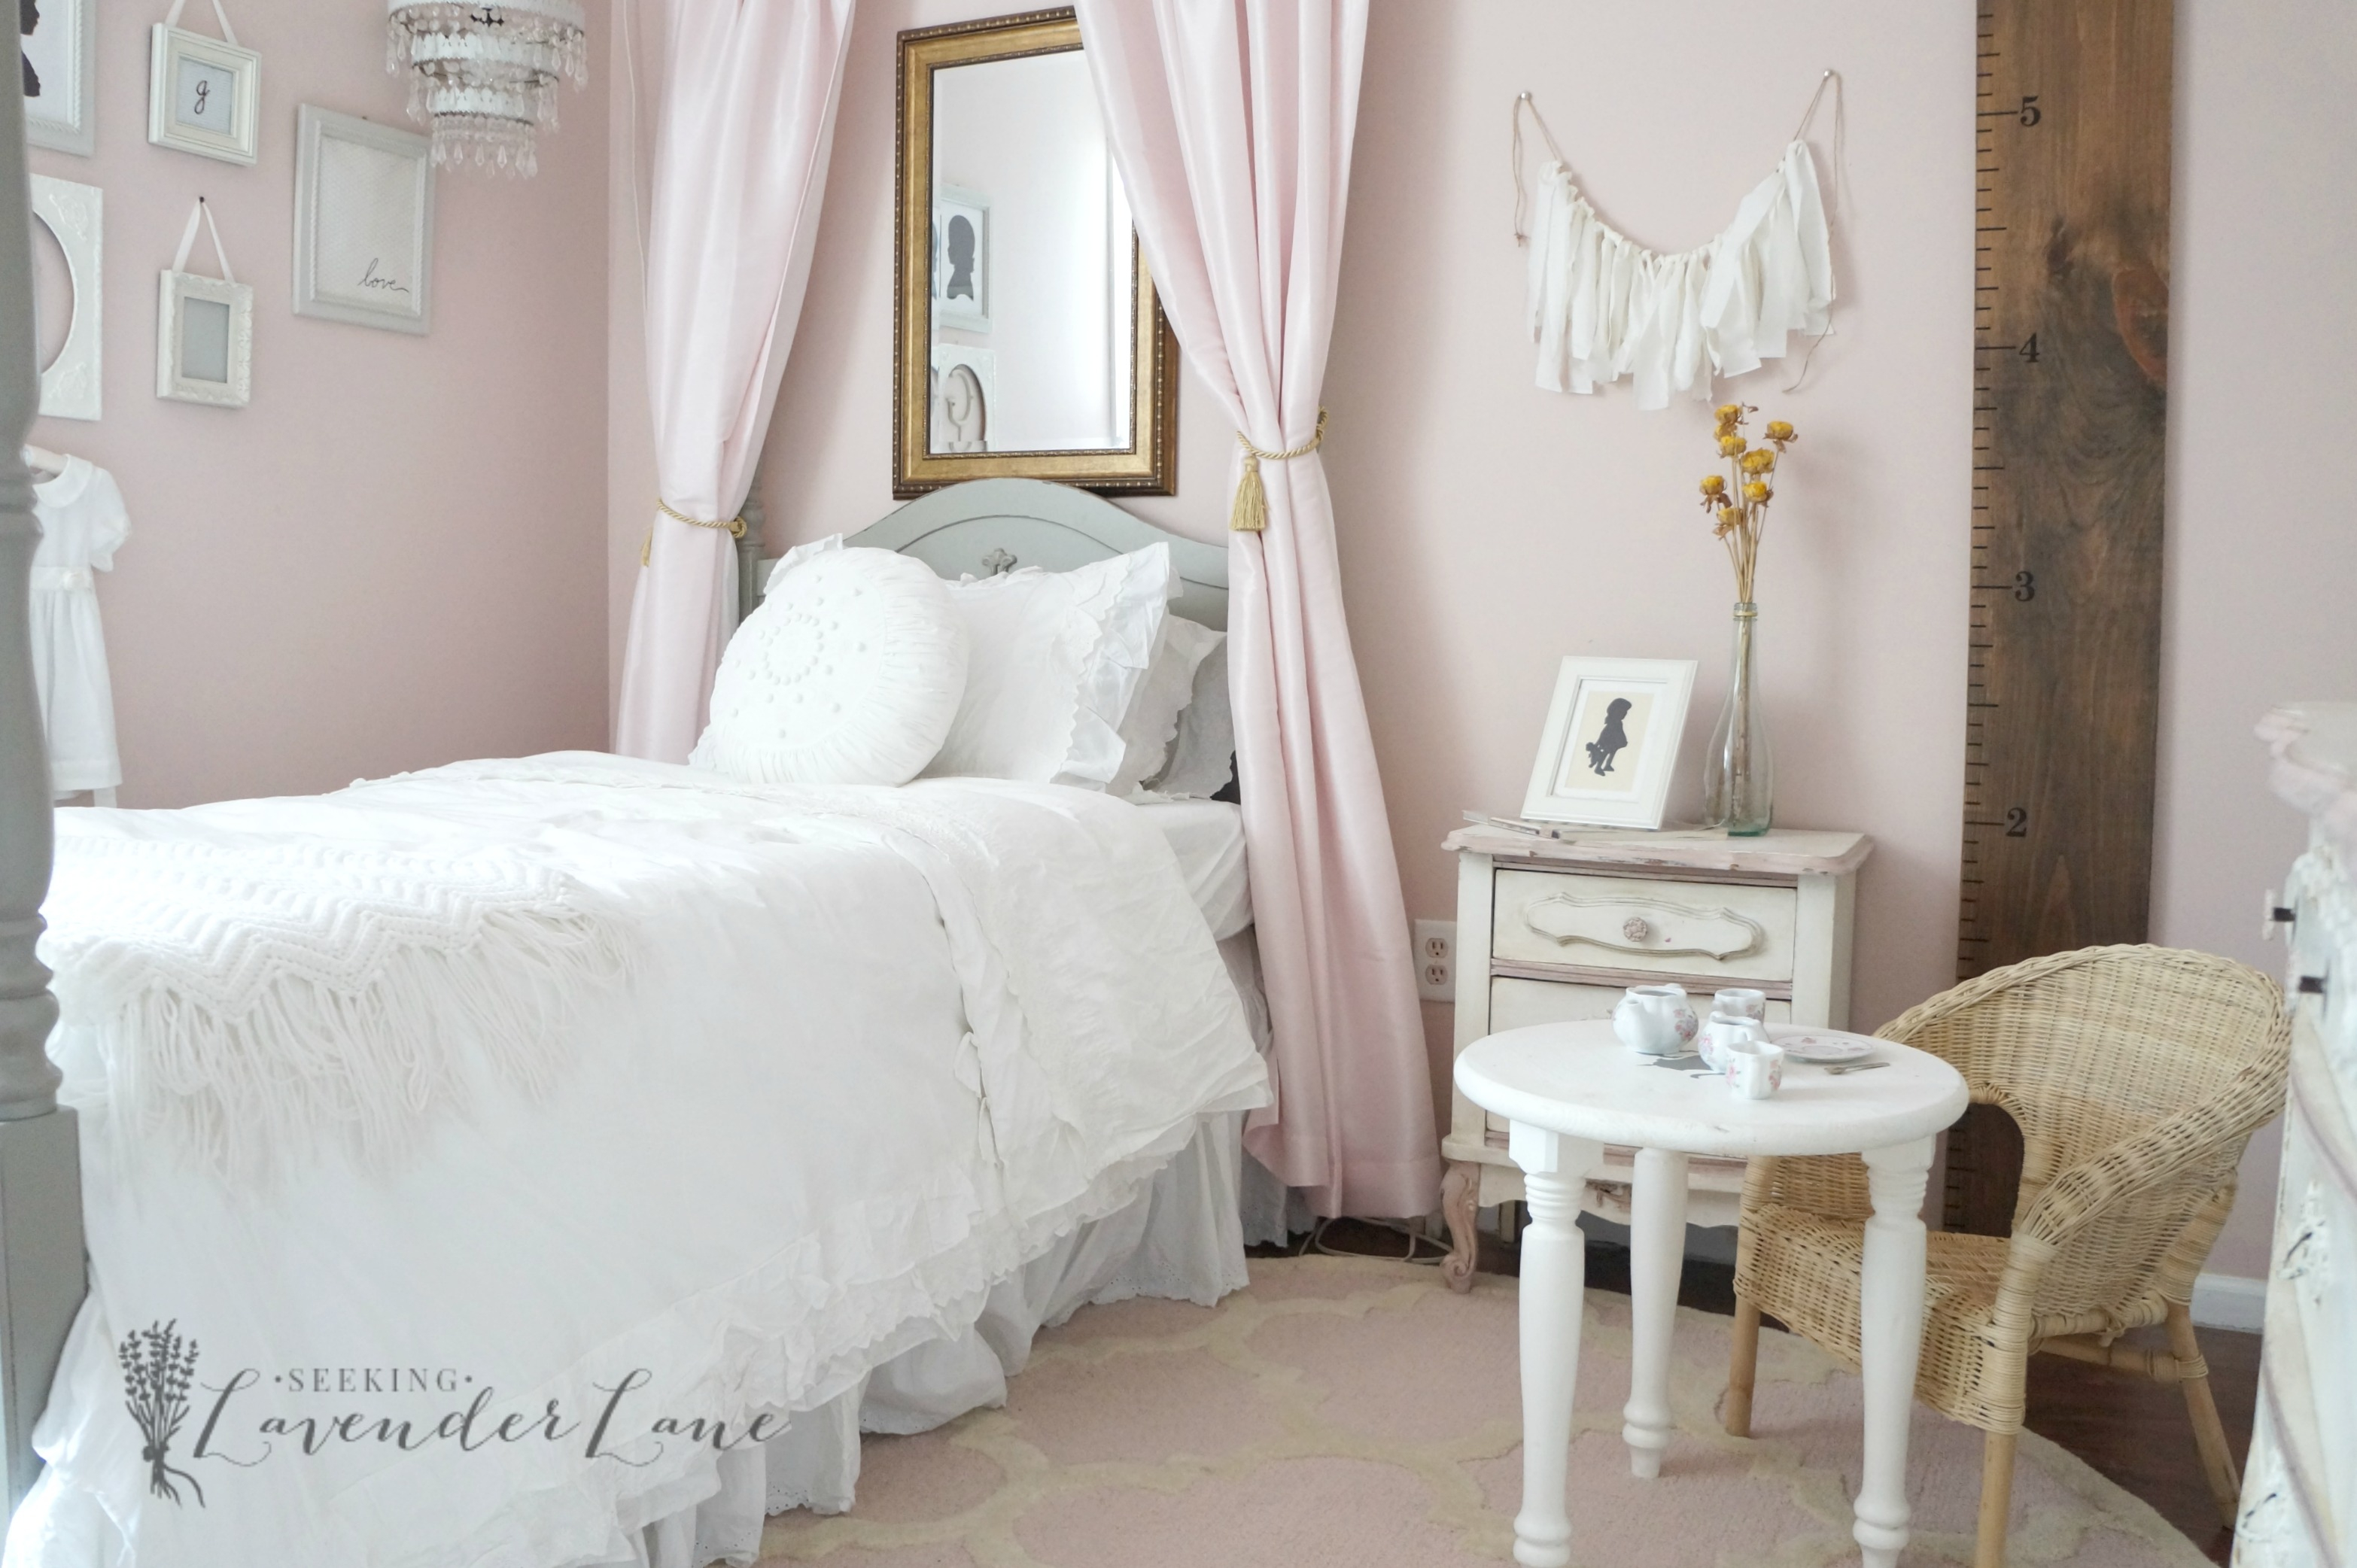 Glamorous Pink Vintage Girl's Bedroom - Seeking Lavendar Lane regarding Vintage Bedroom